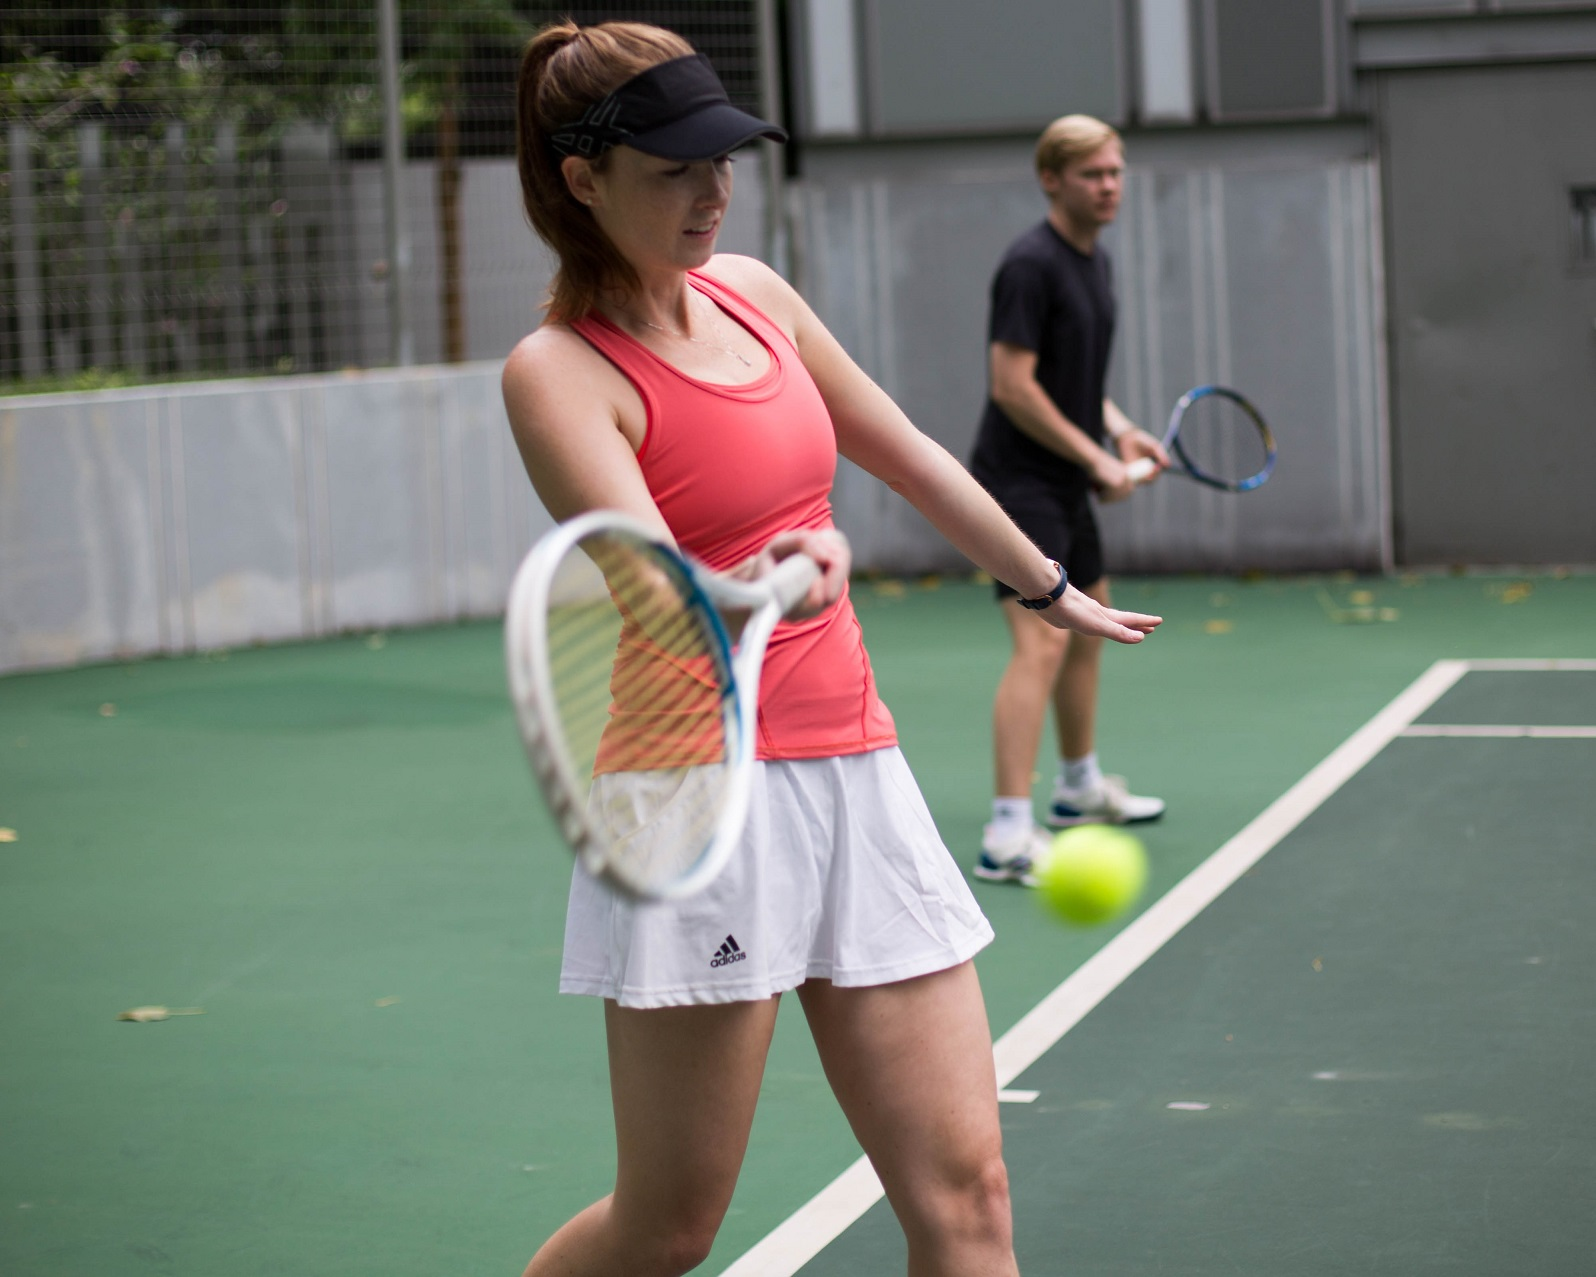 Tennis Lessons Singapore Pair